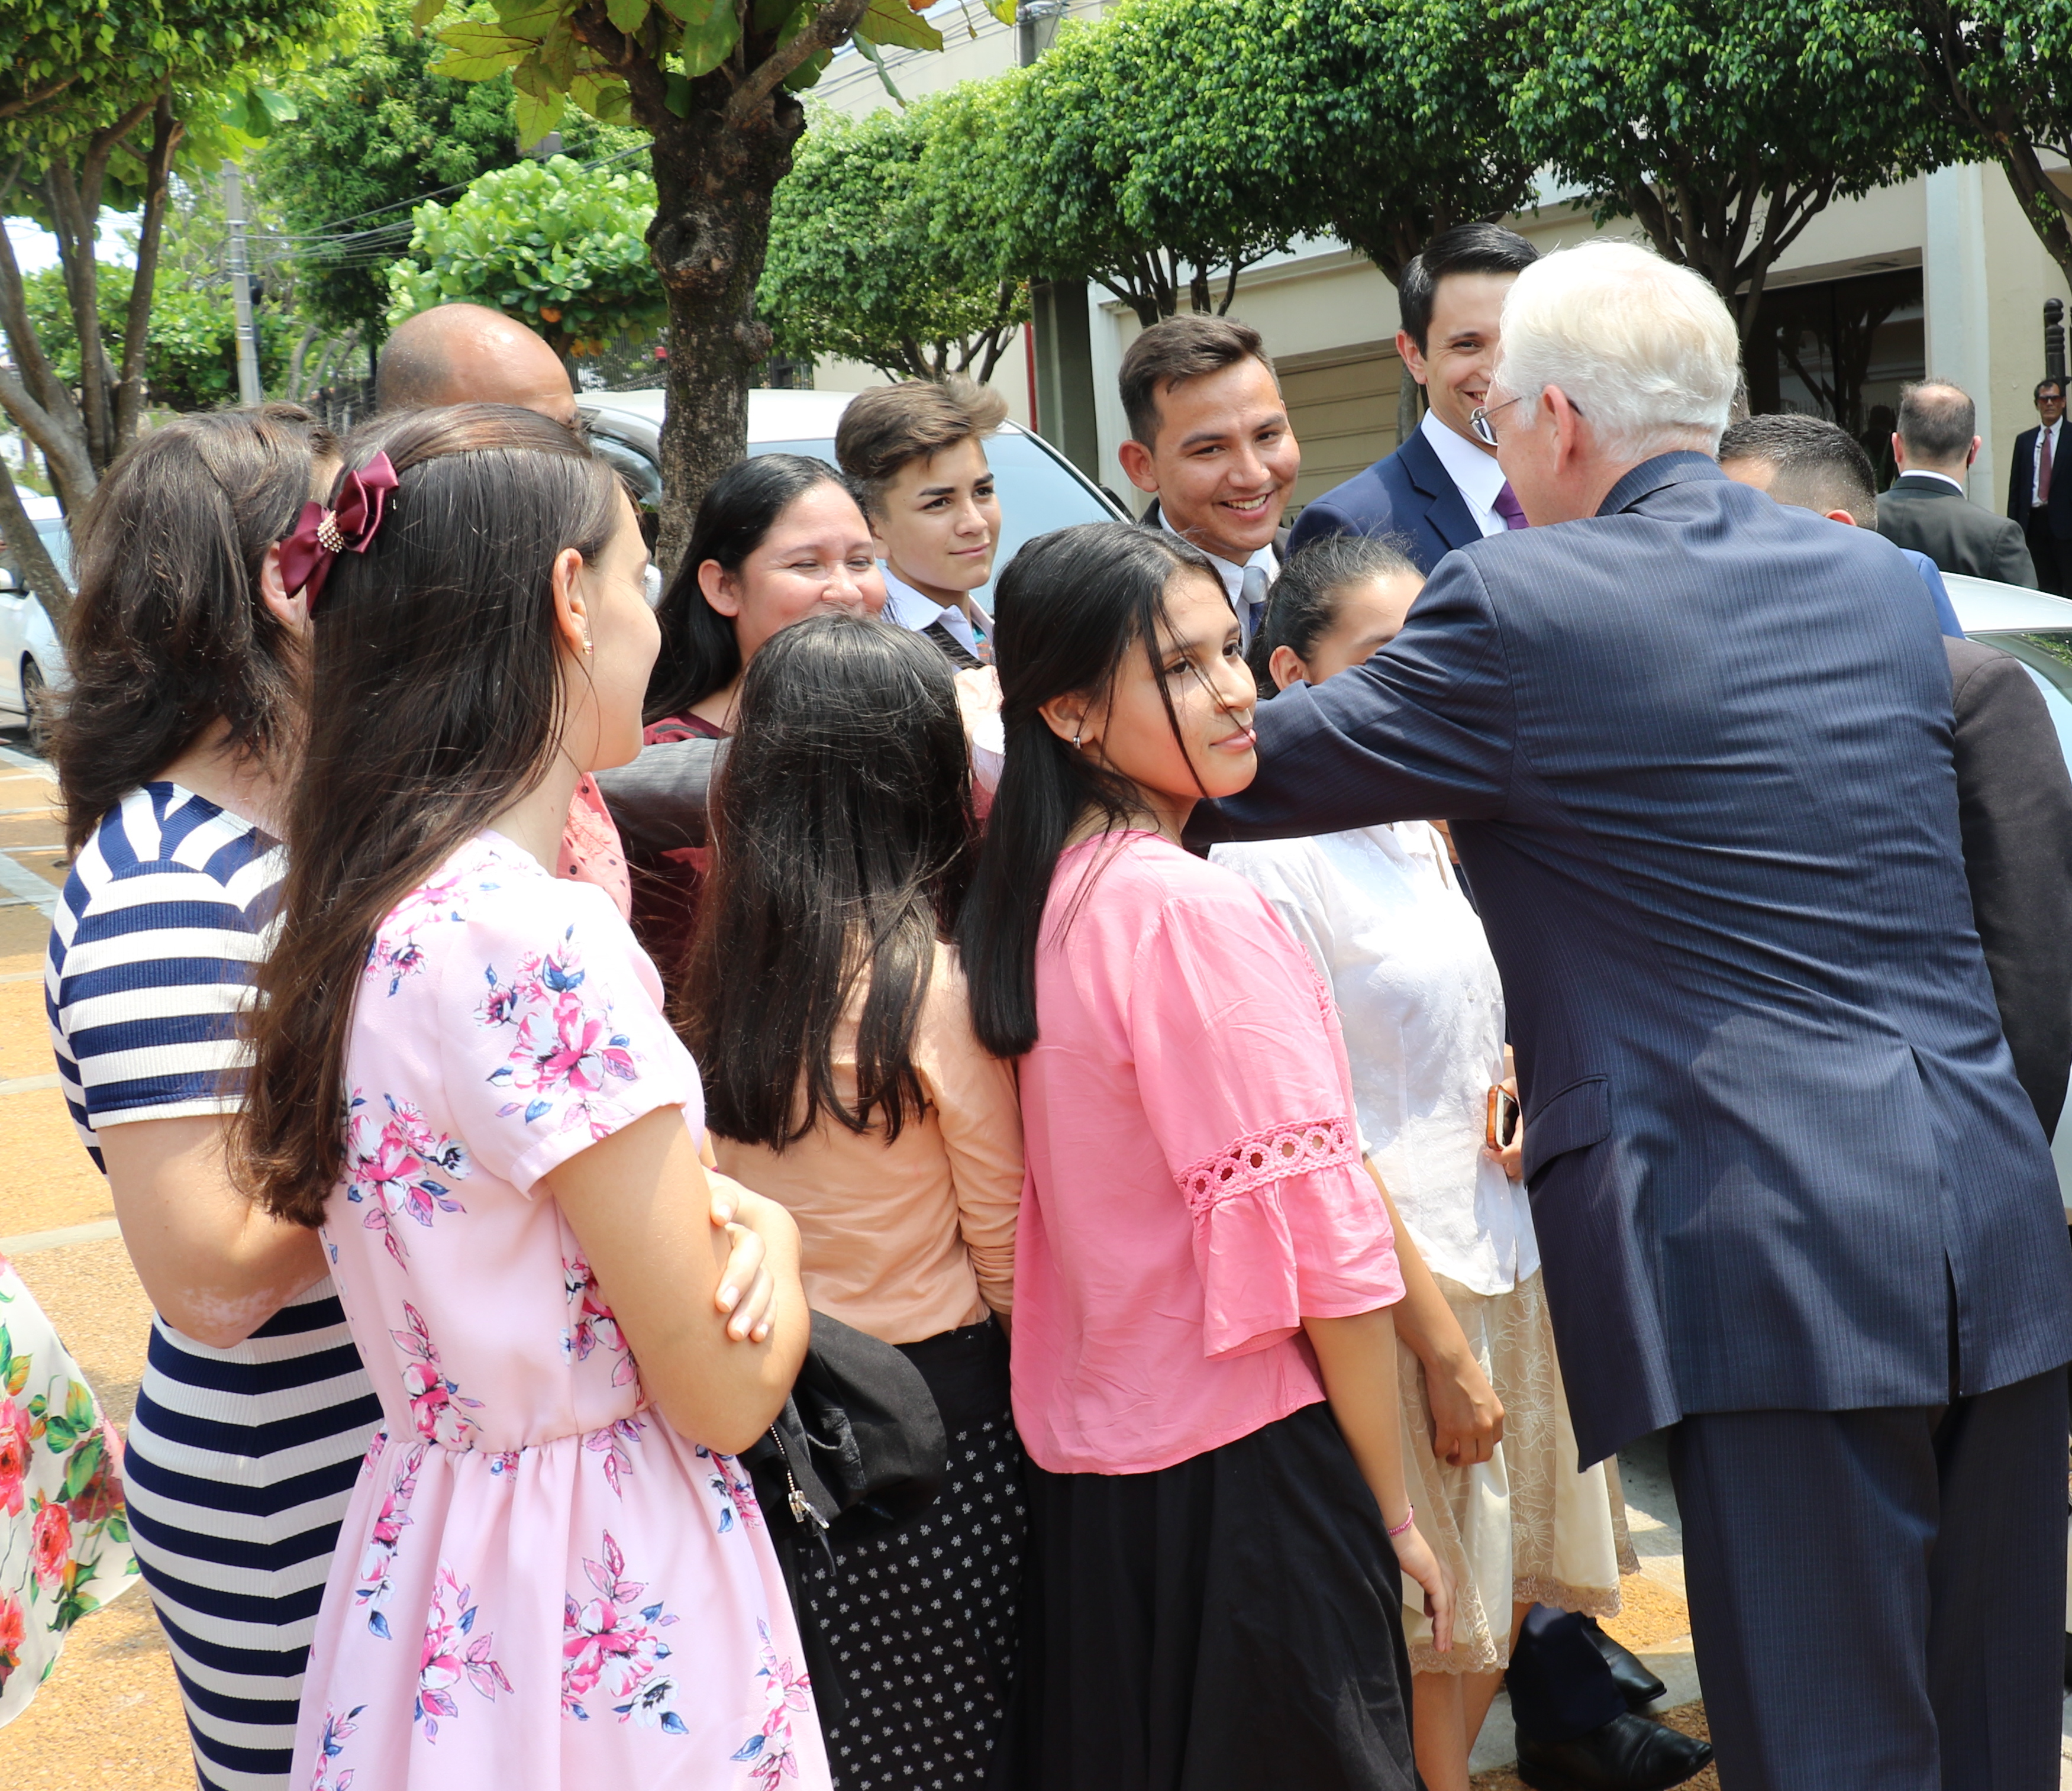 Elder D. Todd Christofferson bids farewell to youth gathered on an Asuncion street following the Nov. 3, 2019, rededication of the Asuncion Paraguay Temple.